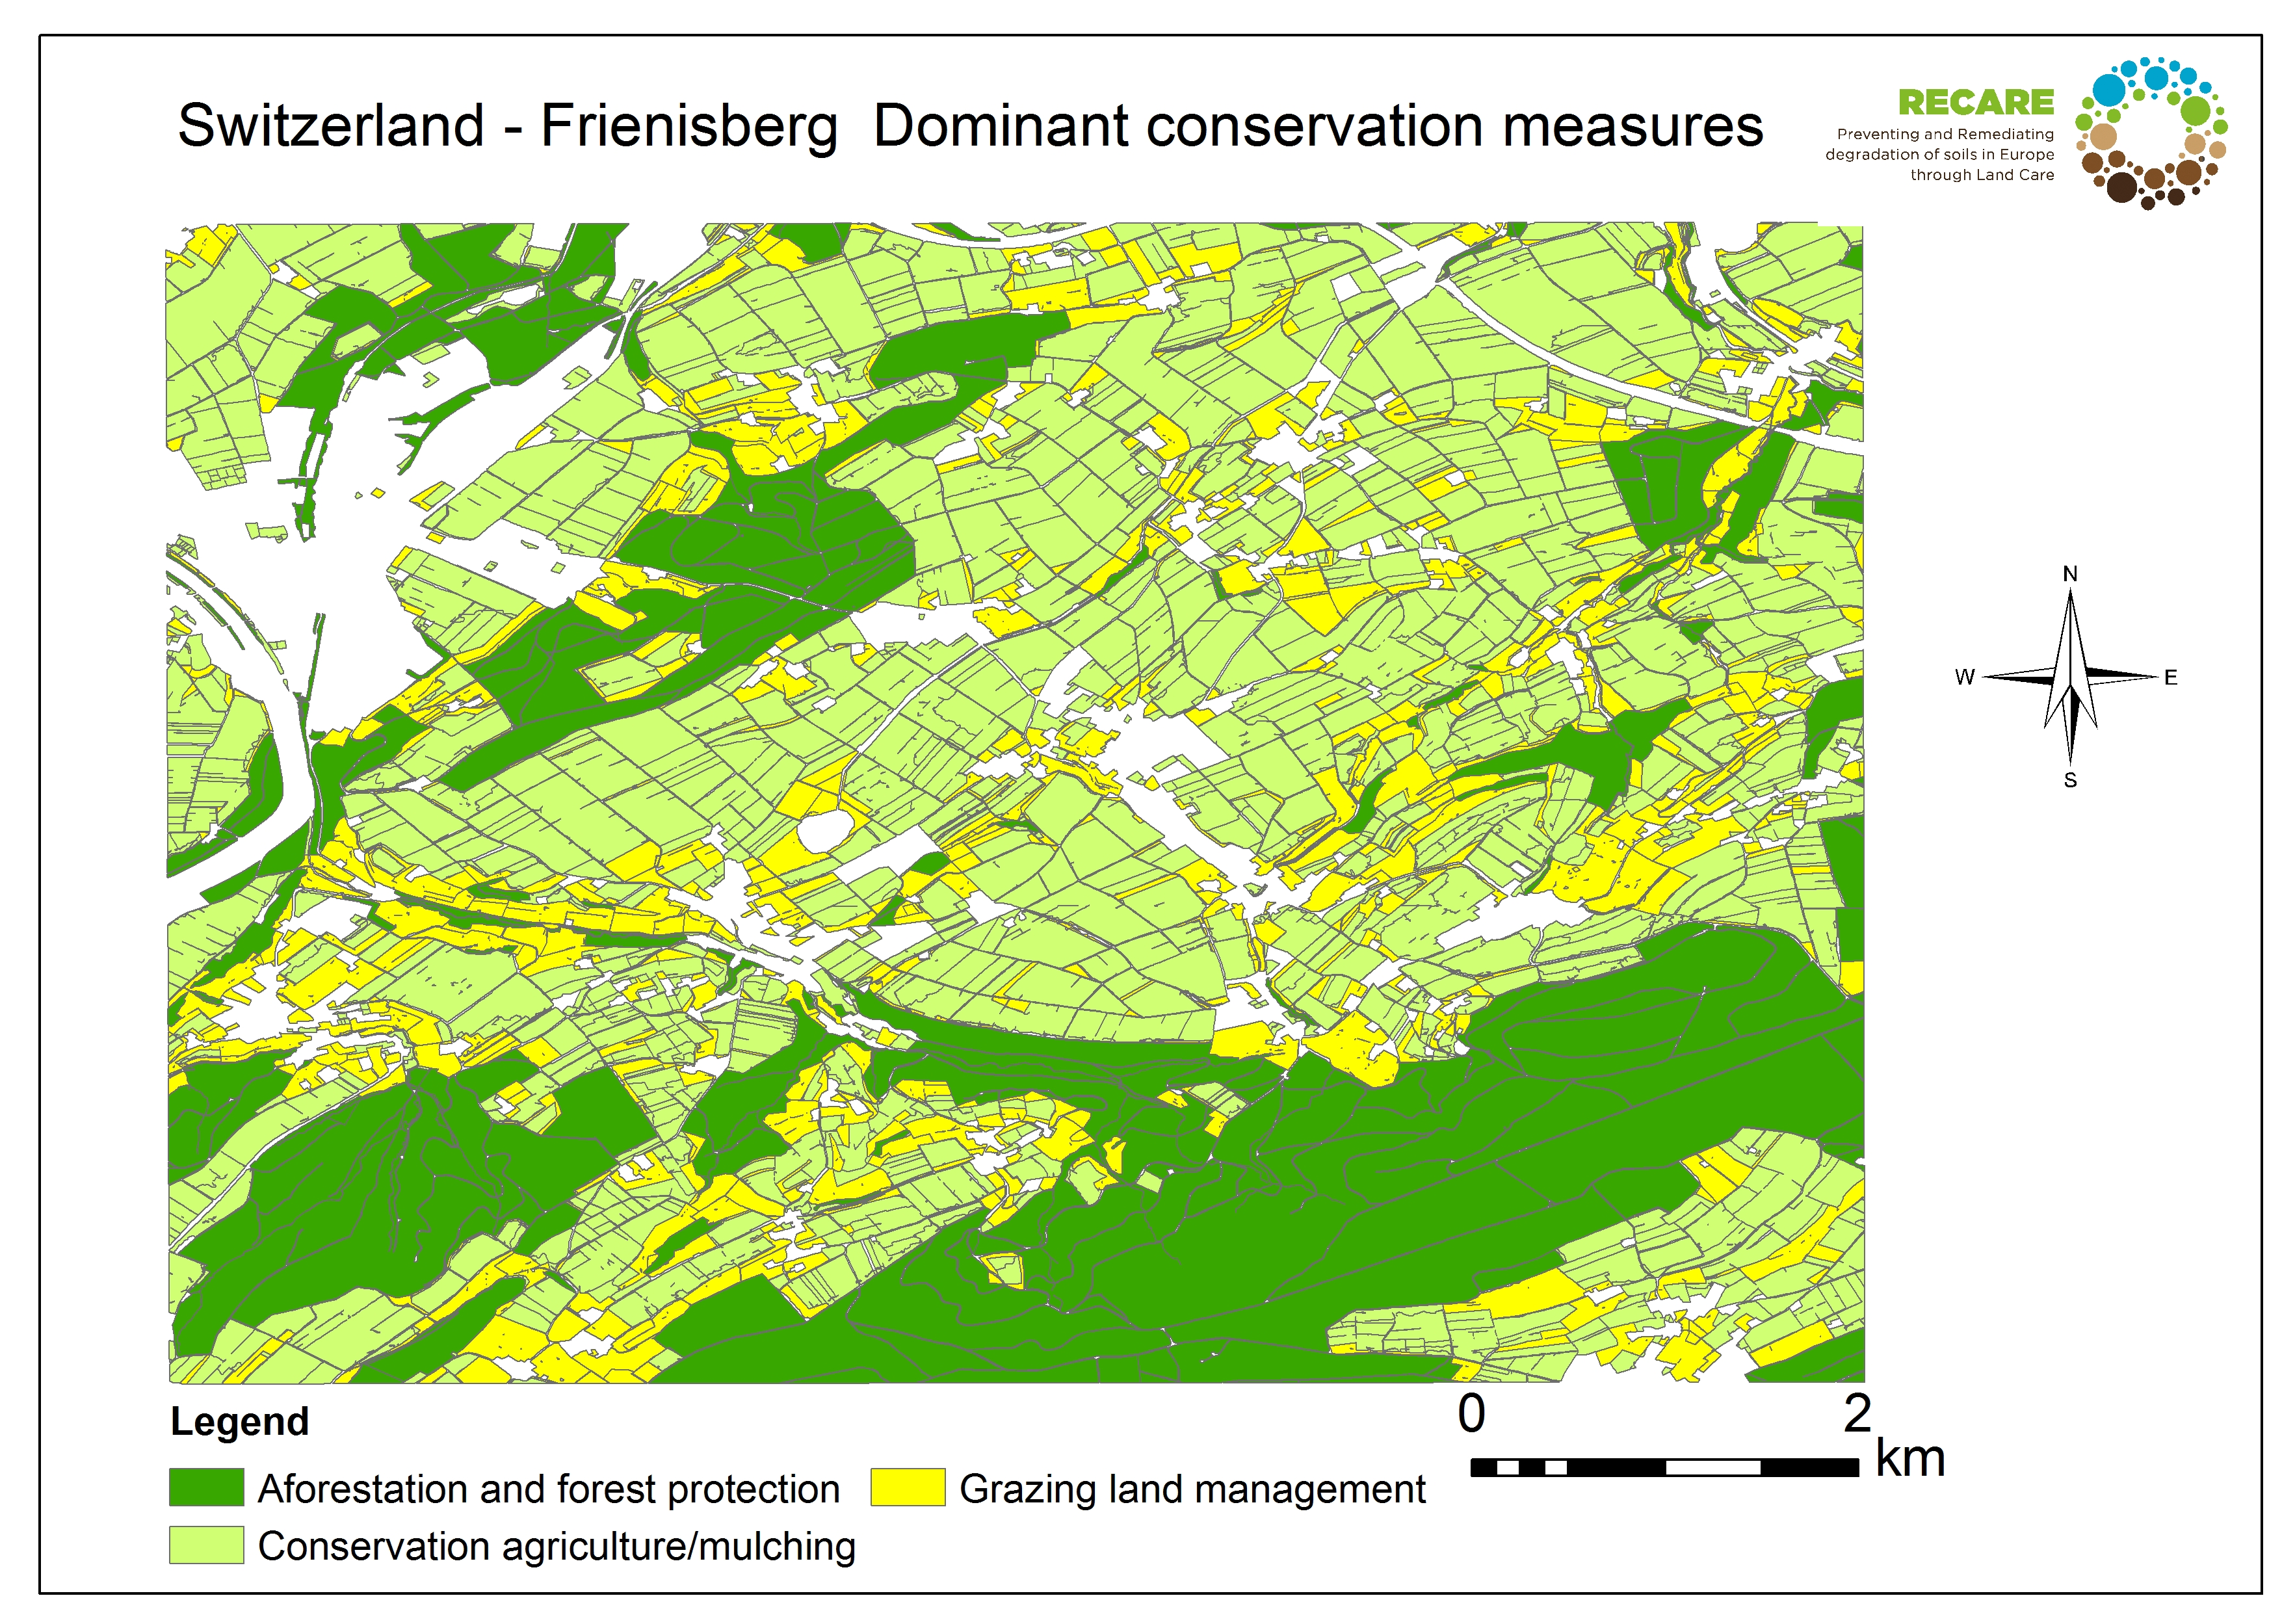 Switzerland Frienisberg dominant conservation measures